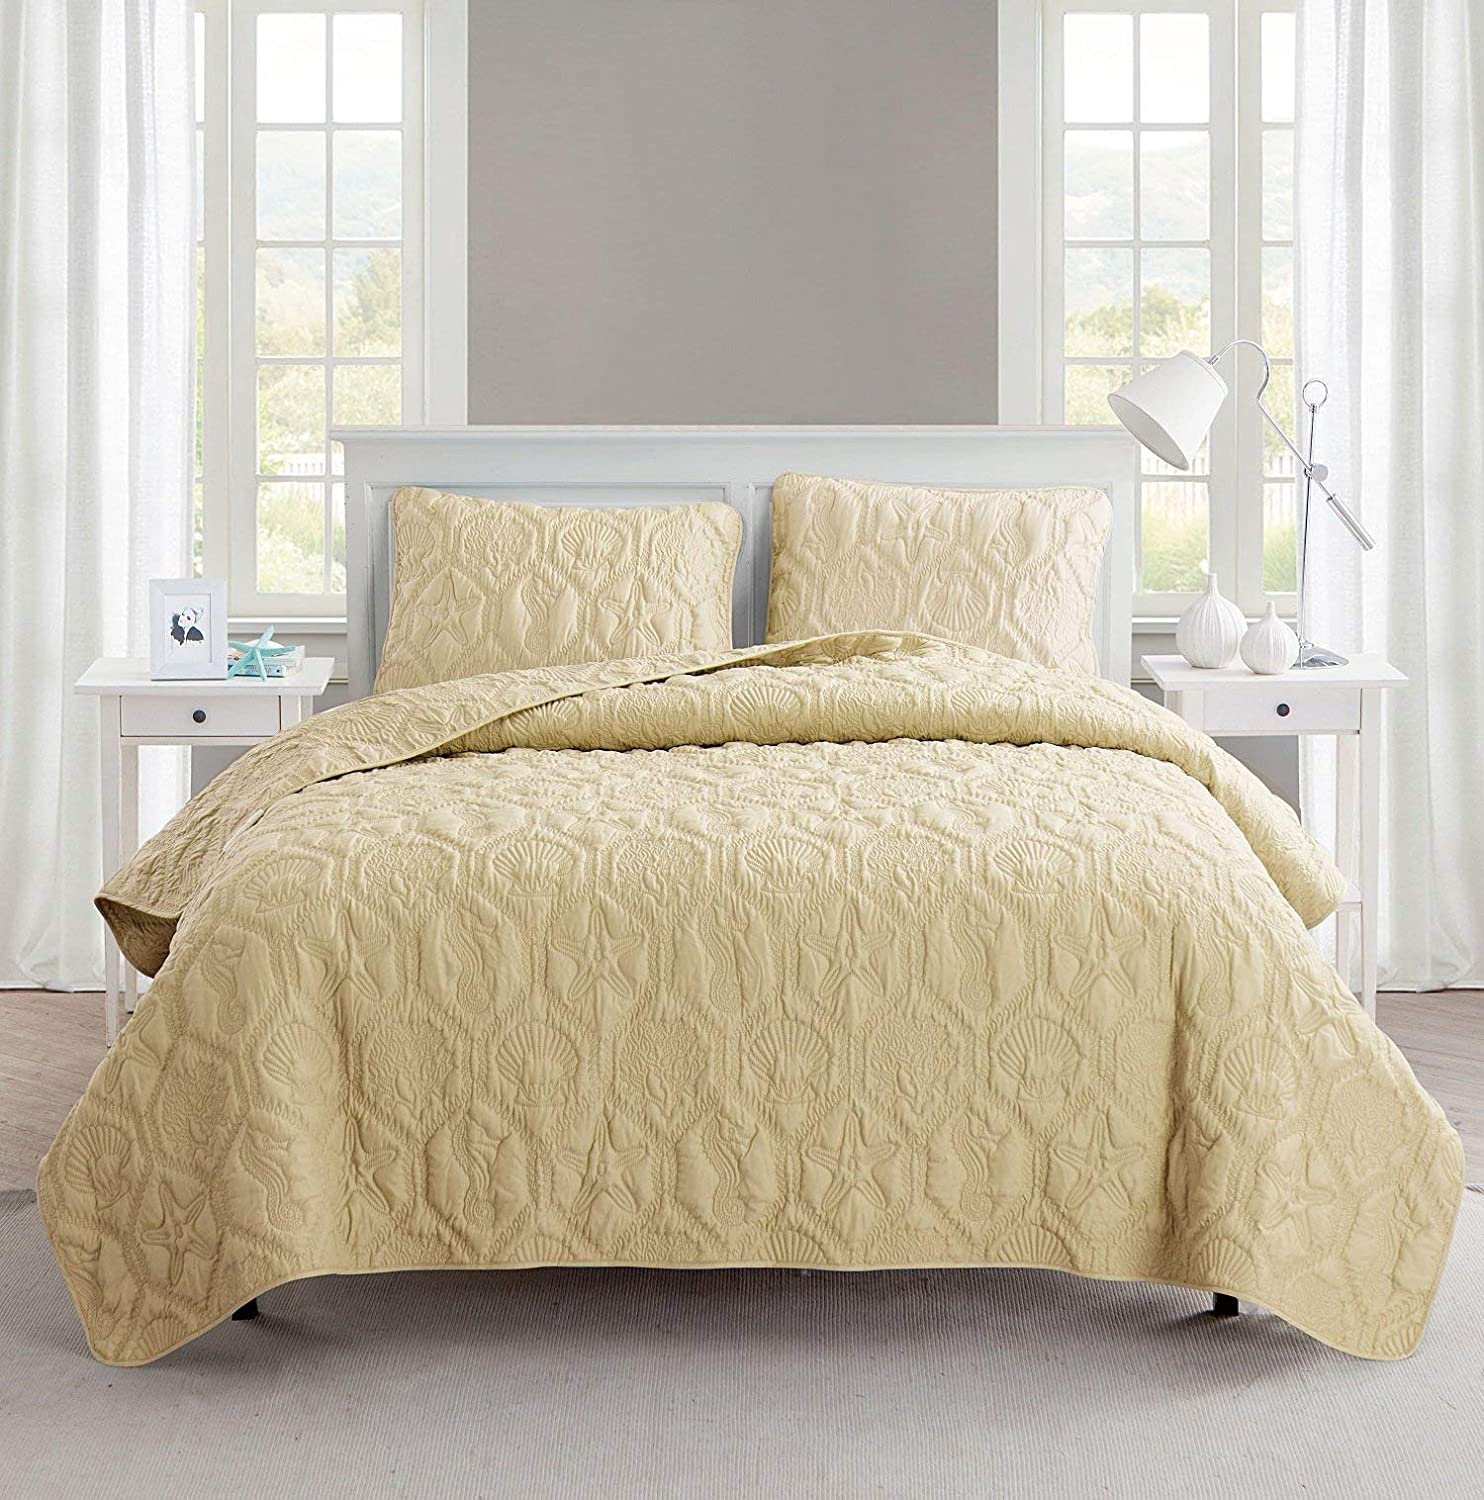 VCNY Home | Shore Collection | Soft, Lightweight, Comfortable Quilt Bedspread, Durable and Wrinkle Free Microfiber 3 Piece Bedding Set, Queen, Tan